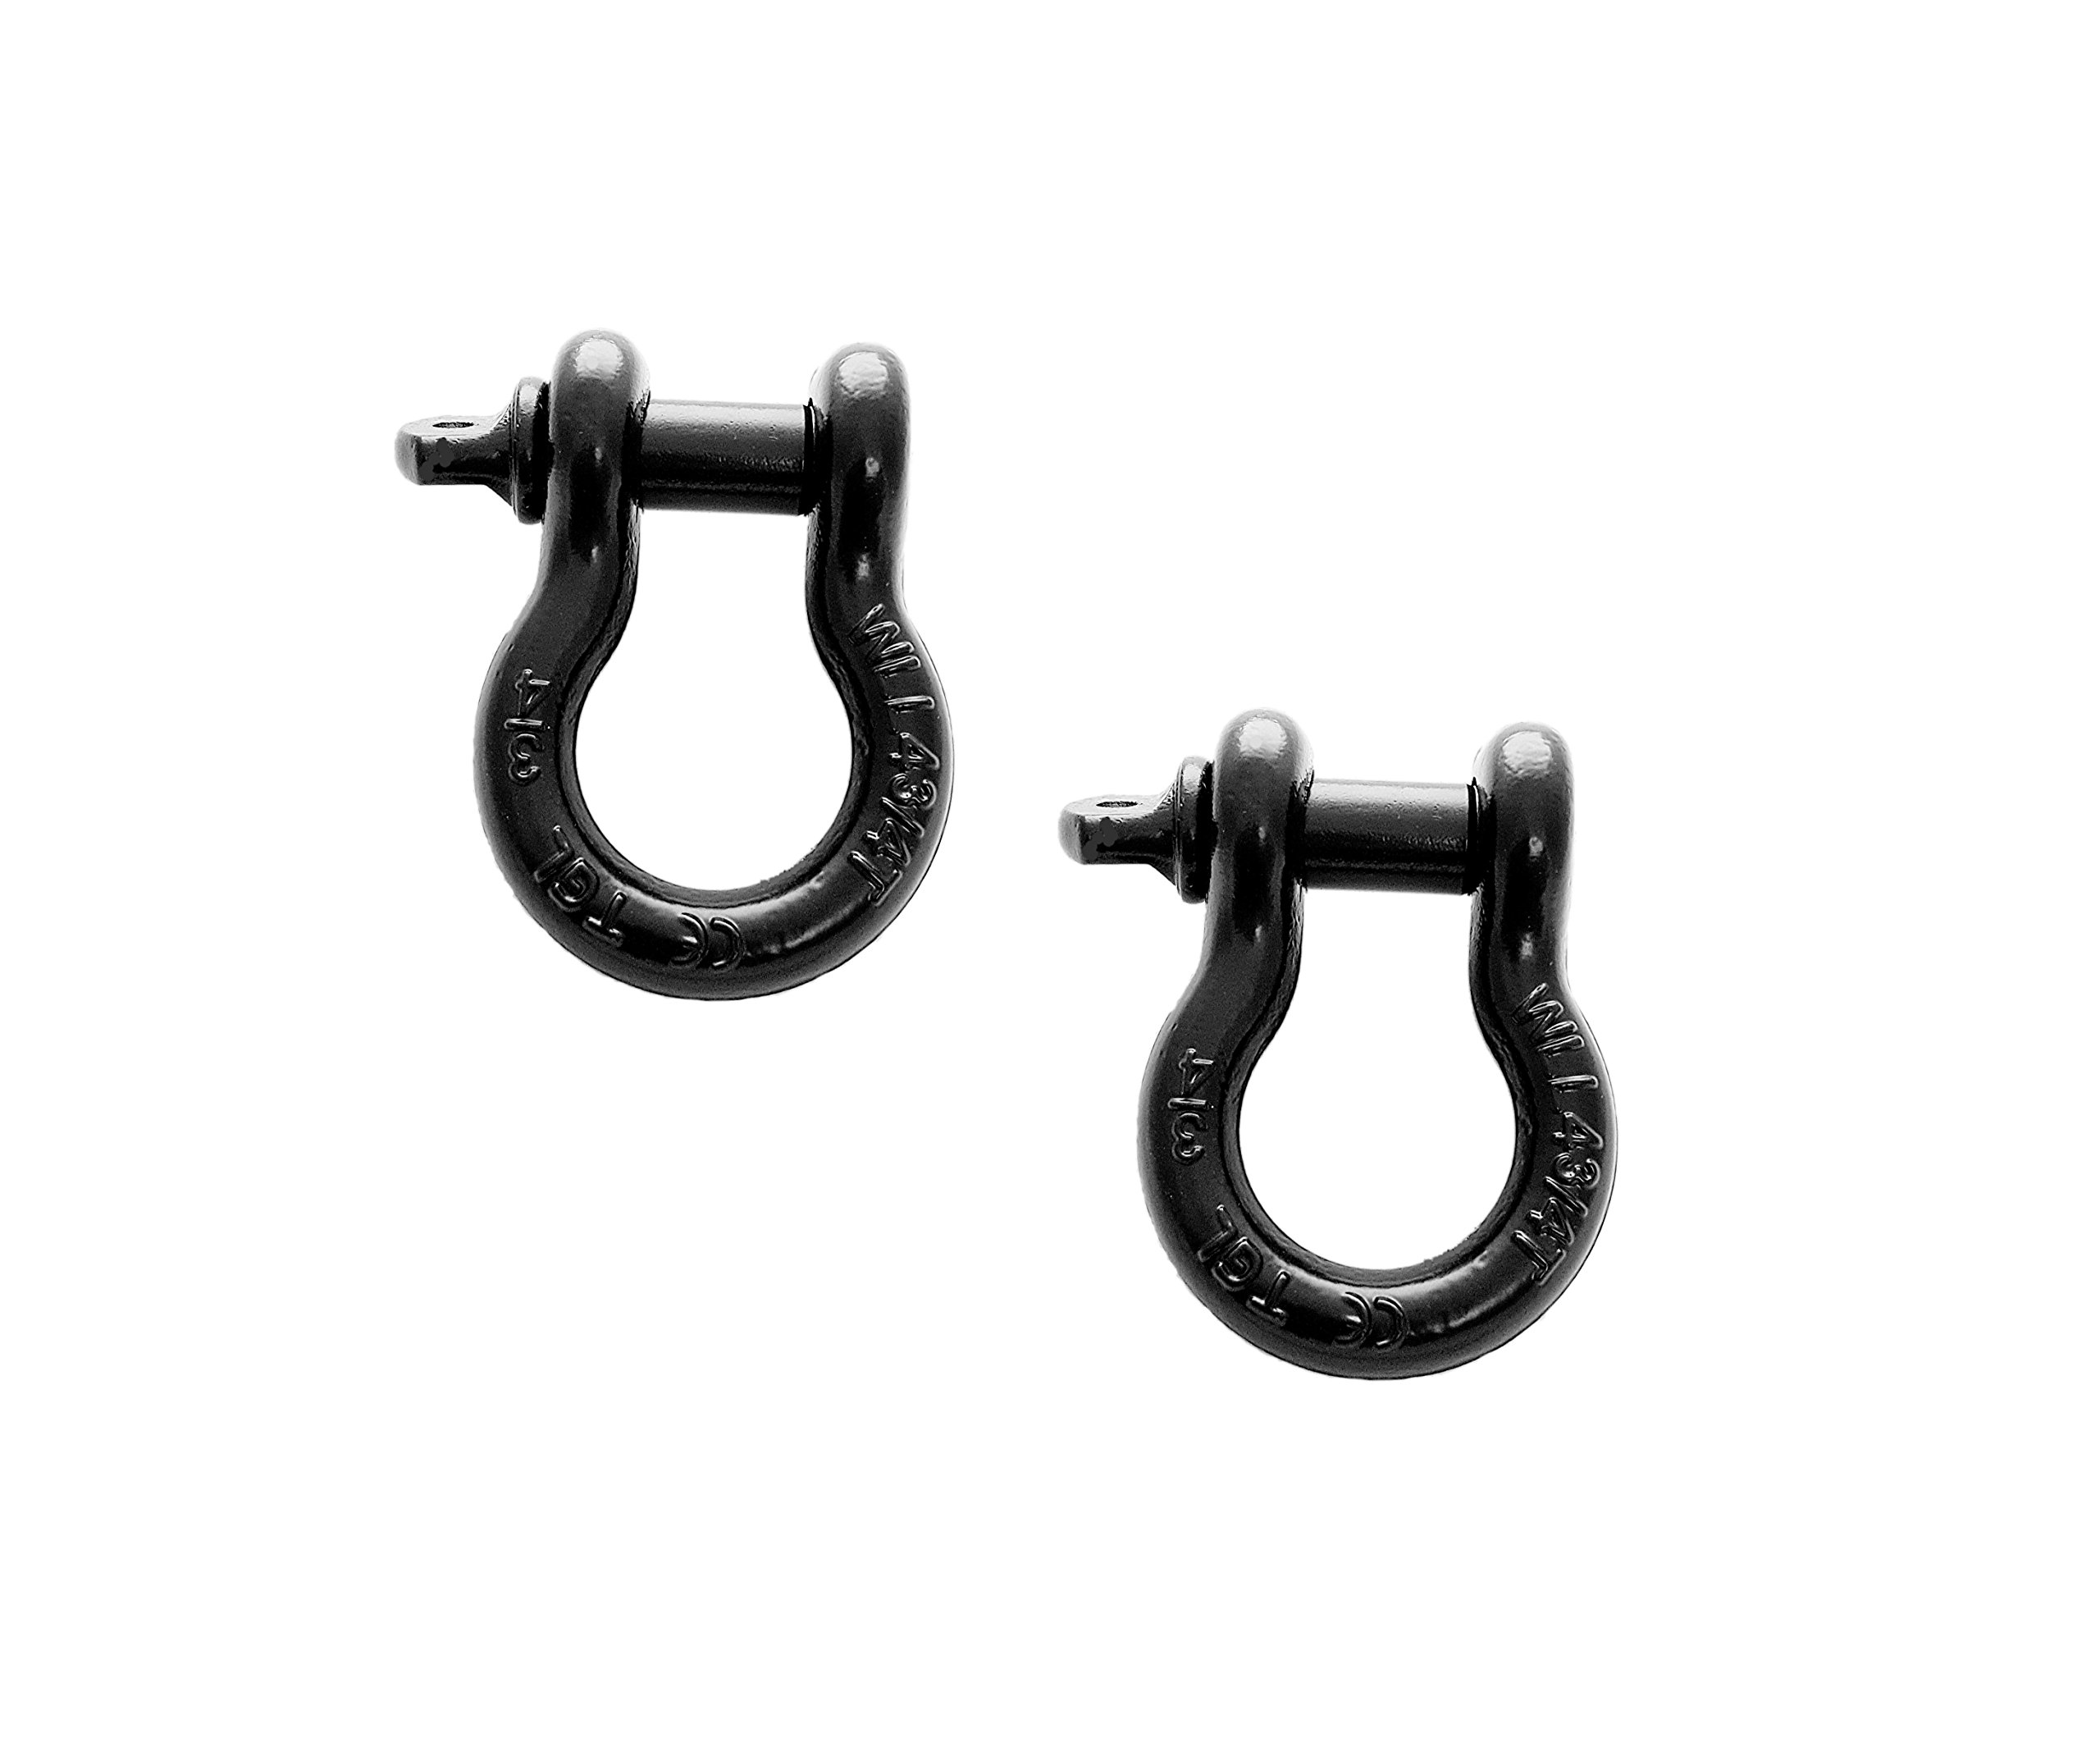 2-Pack of 3/4'' Black D-ring Shackle, 4 3/4 tons WLL